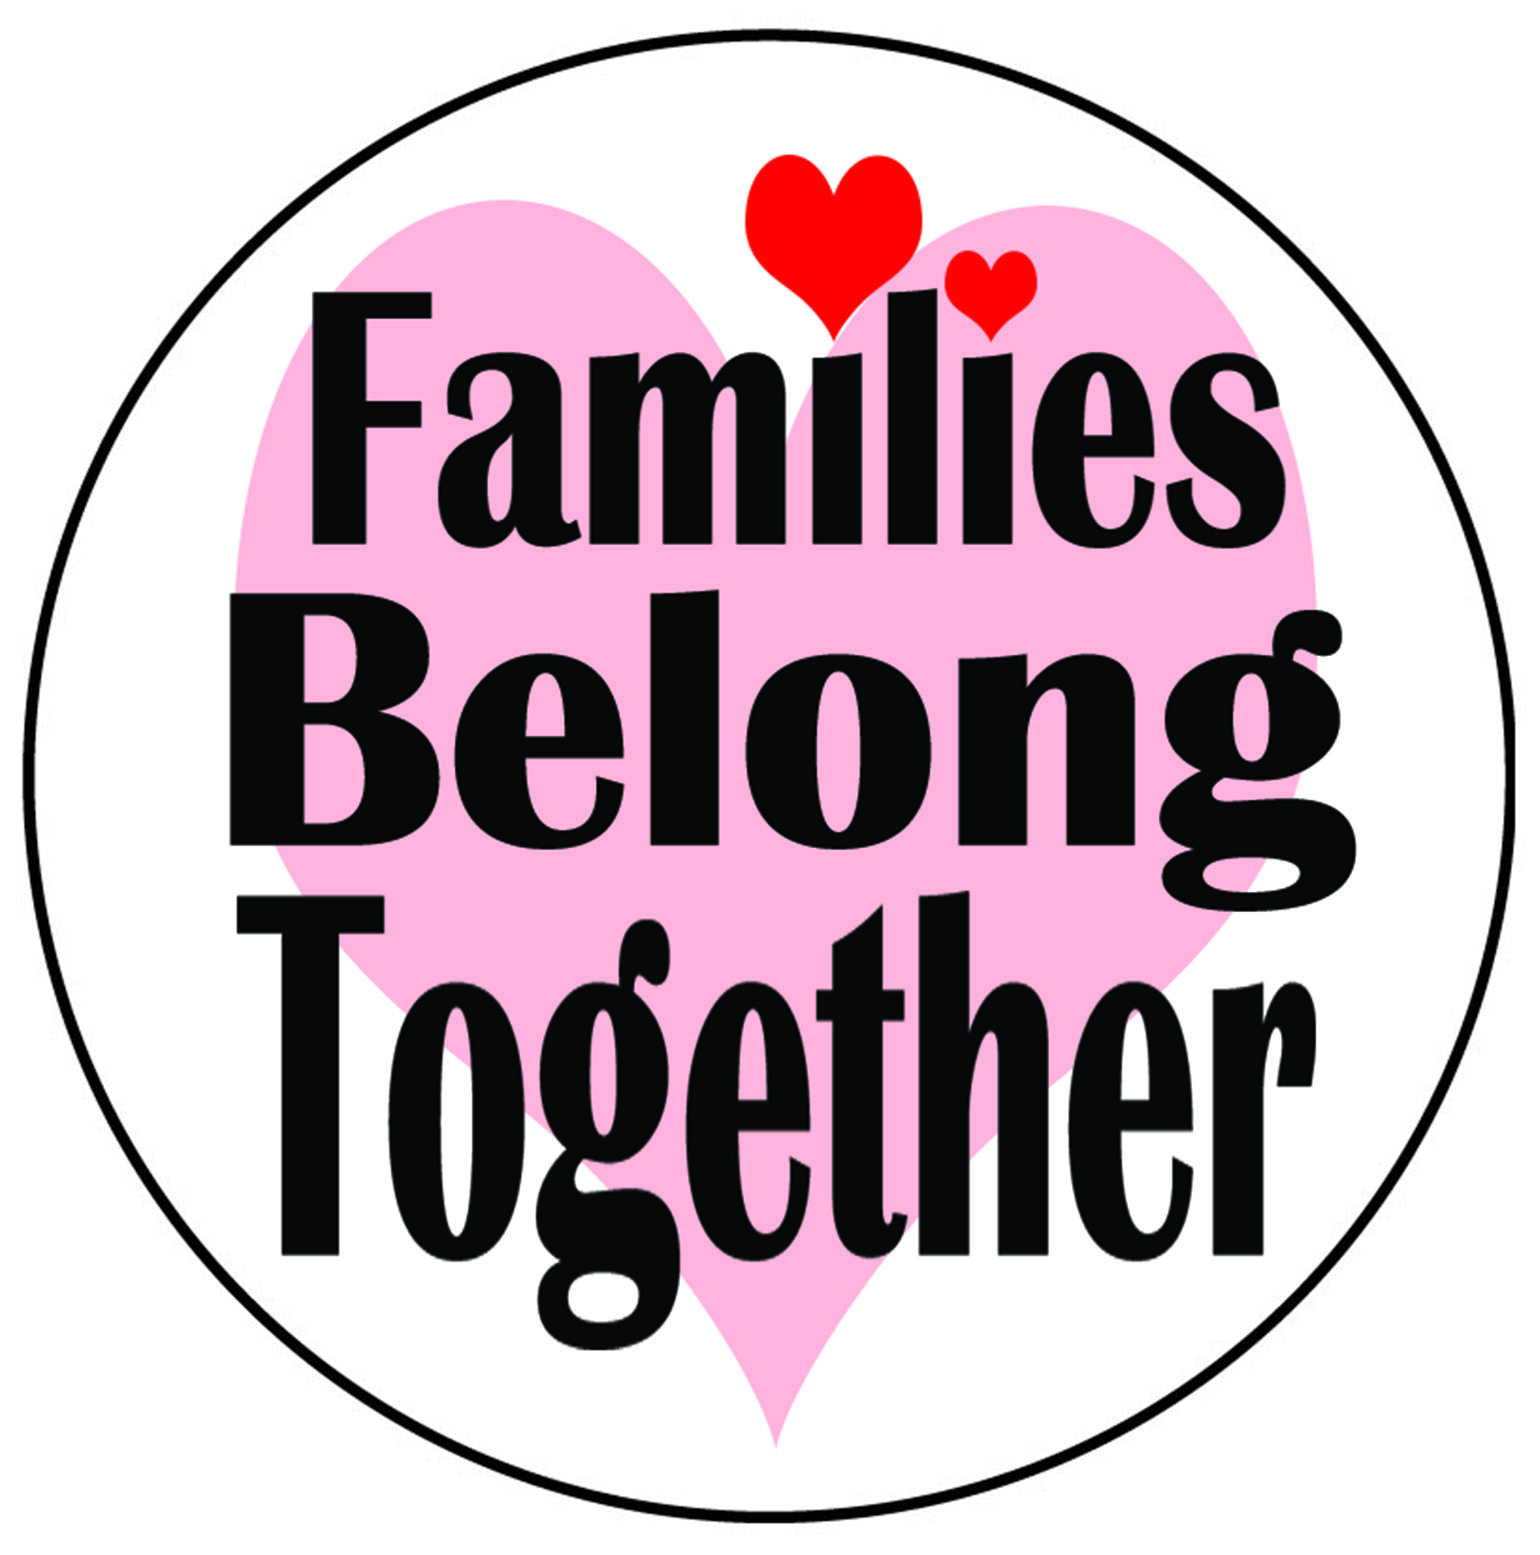 Families Belong Together textimage.jpg